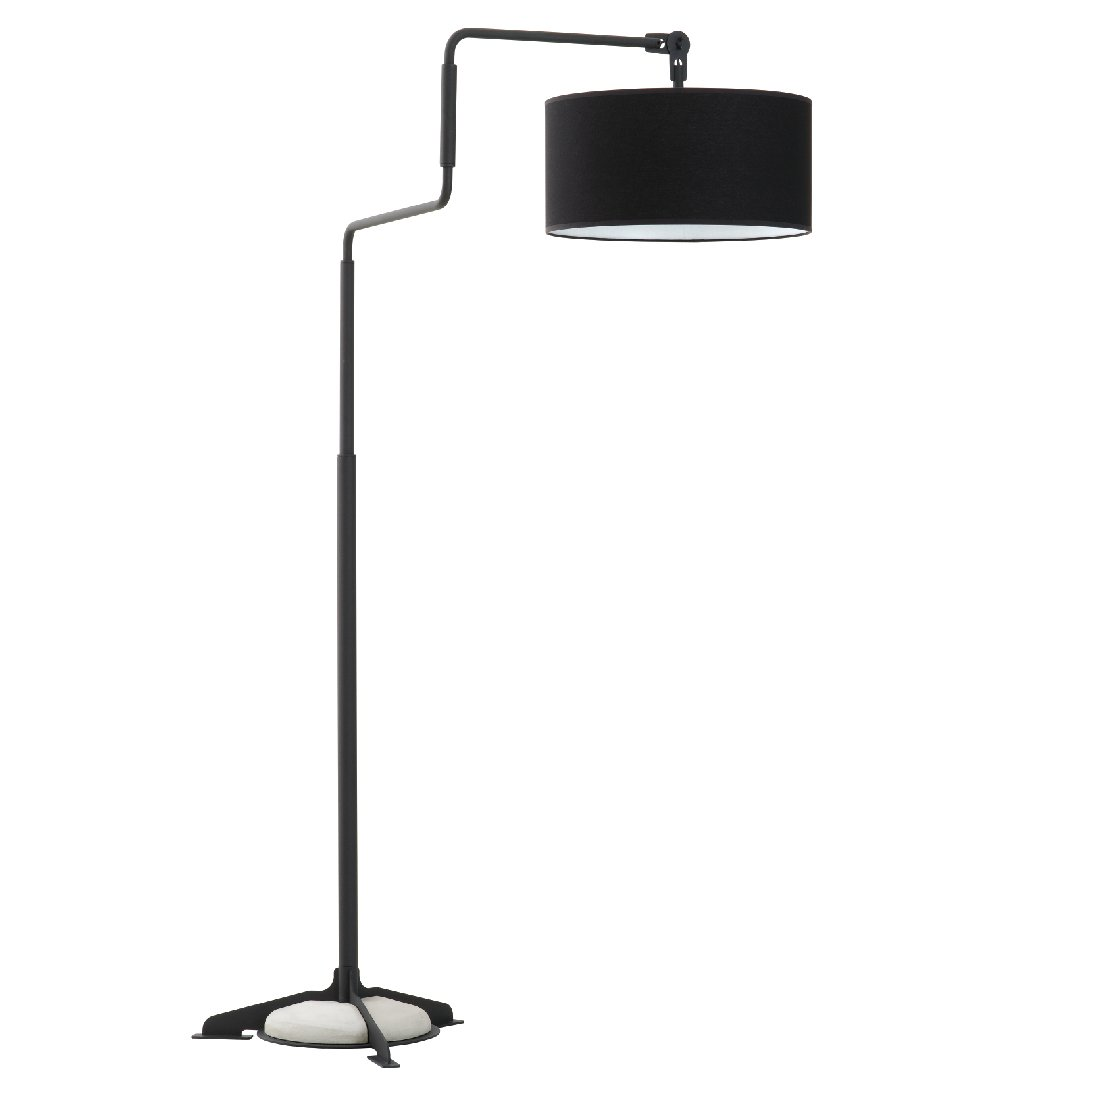 Functionals Swivel Light Floor Vloerlamp